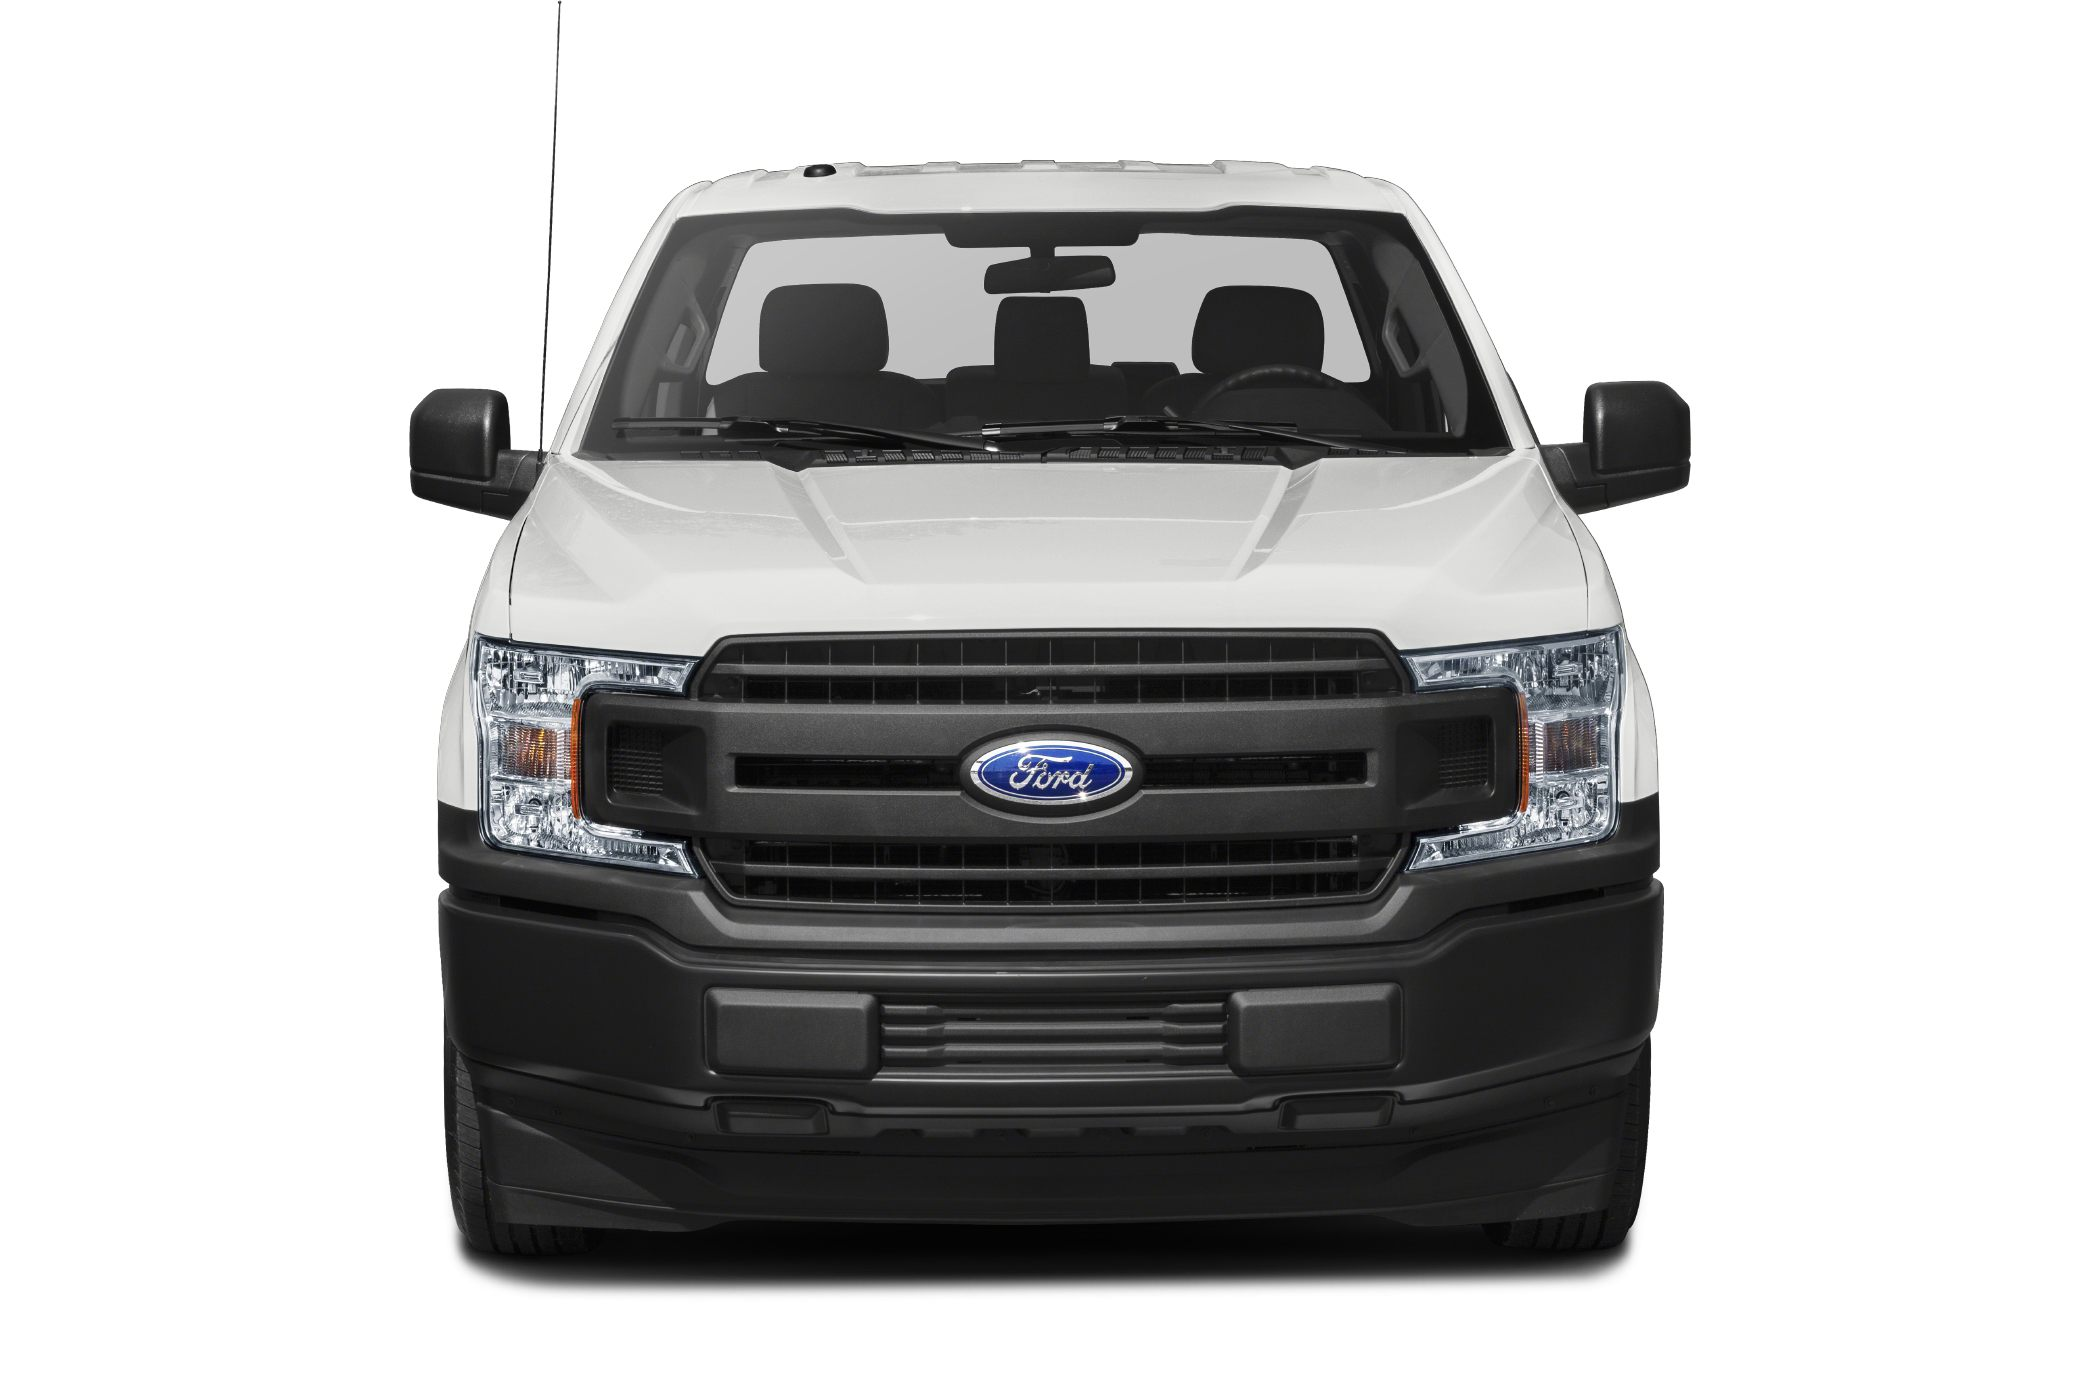 New 2018 ford f 150 xl truck oxford white color inventory vehicle details at tallassee ford your tallassee alabama ford dealer